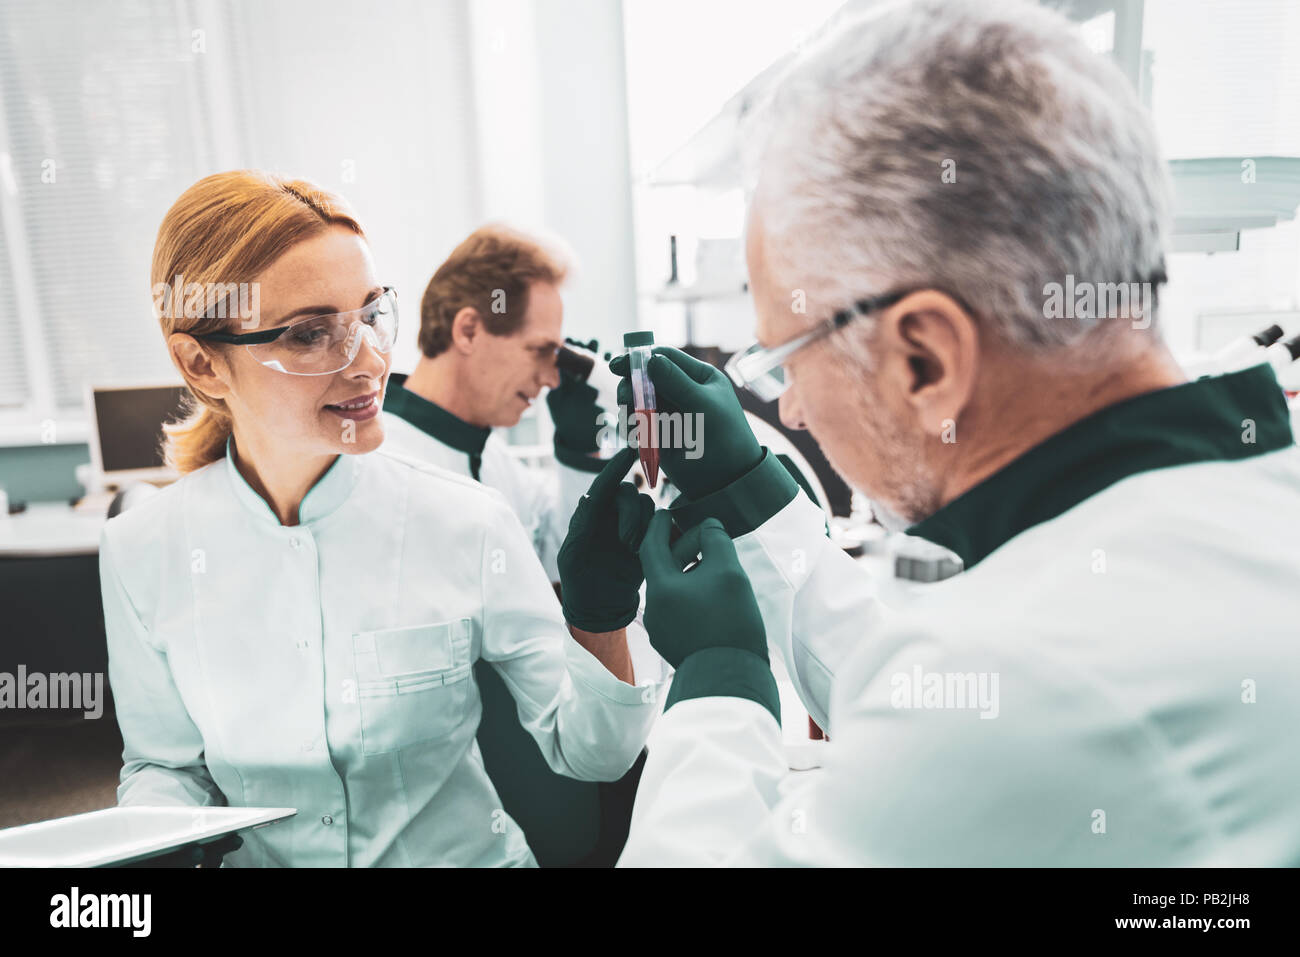 Chemical assistant cooperating with her scientific advisor - Stock Image